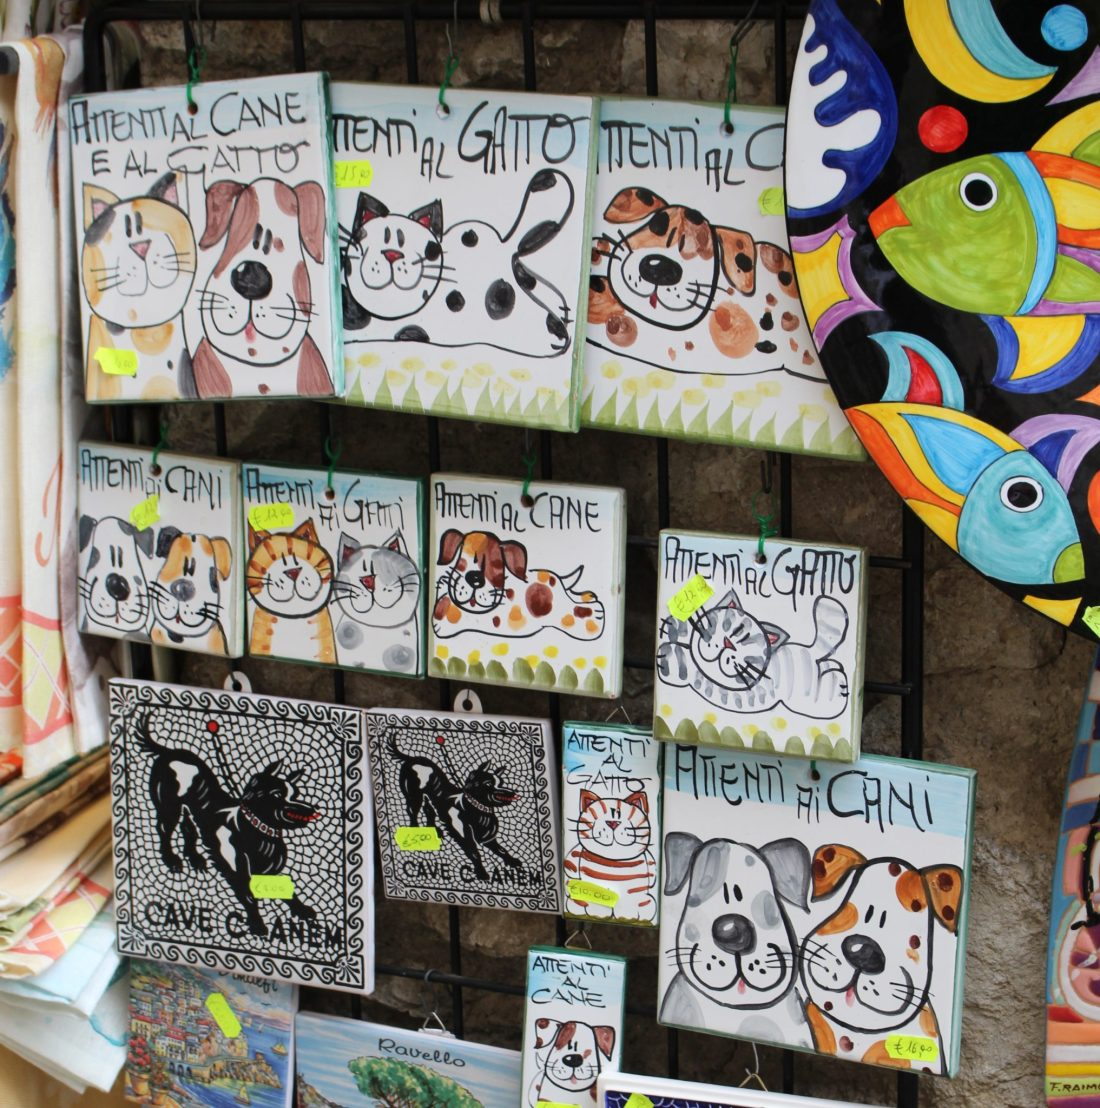 Shop selling ceramic tiles with pictures of dogs and cats on them